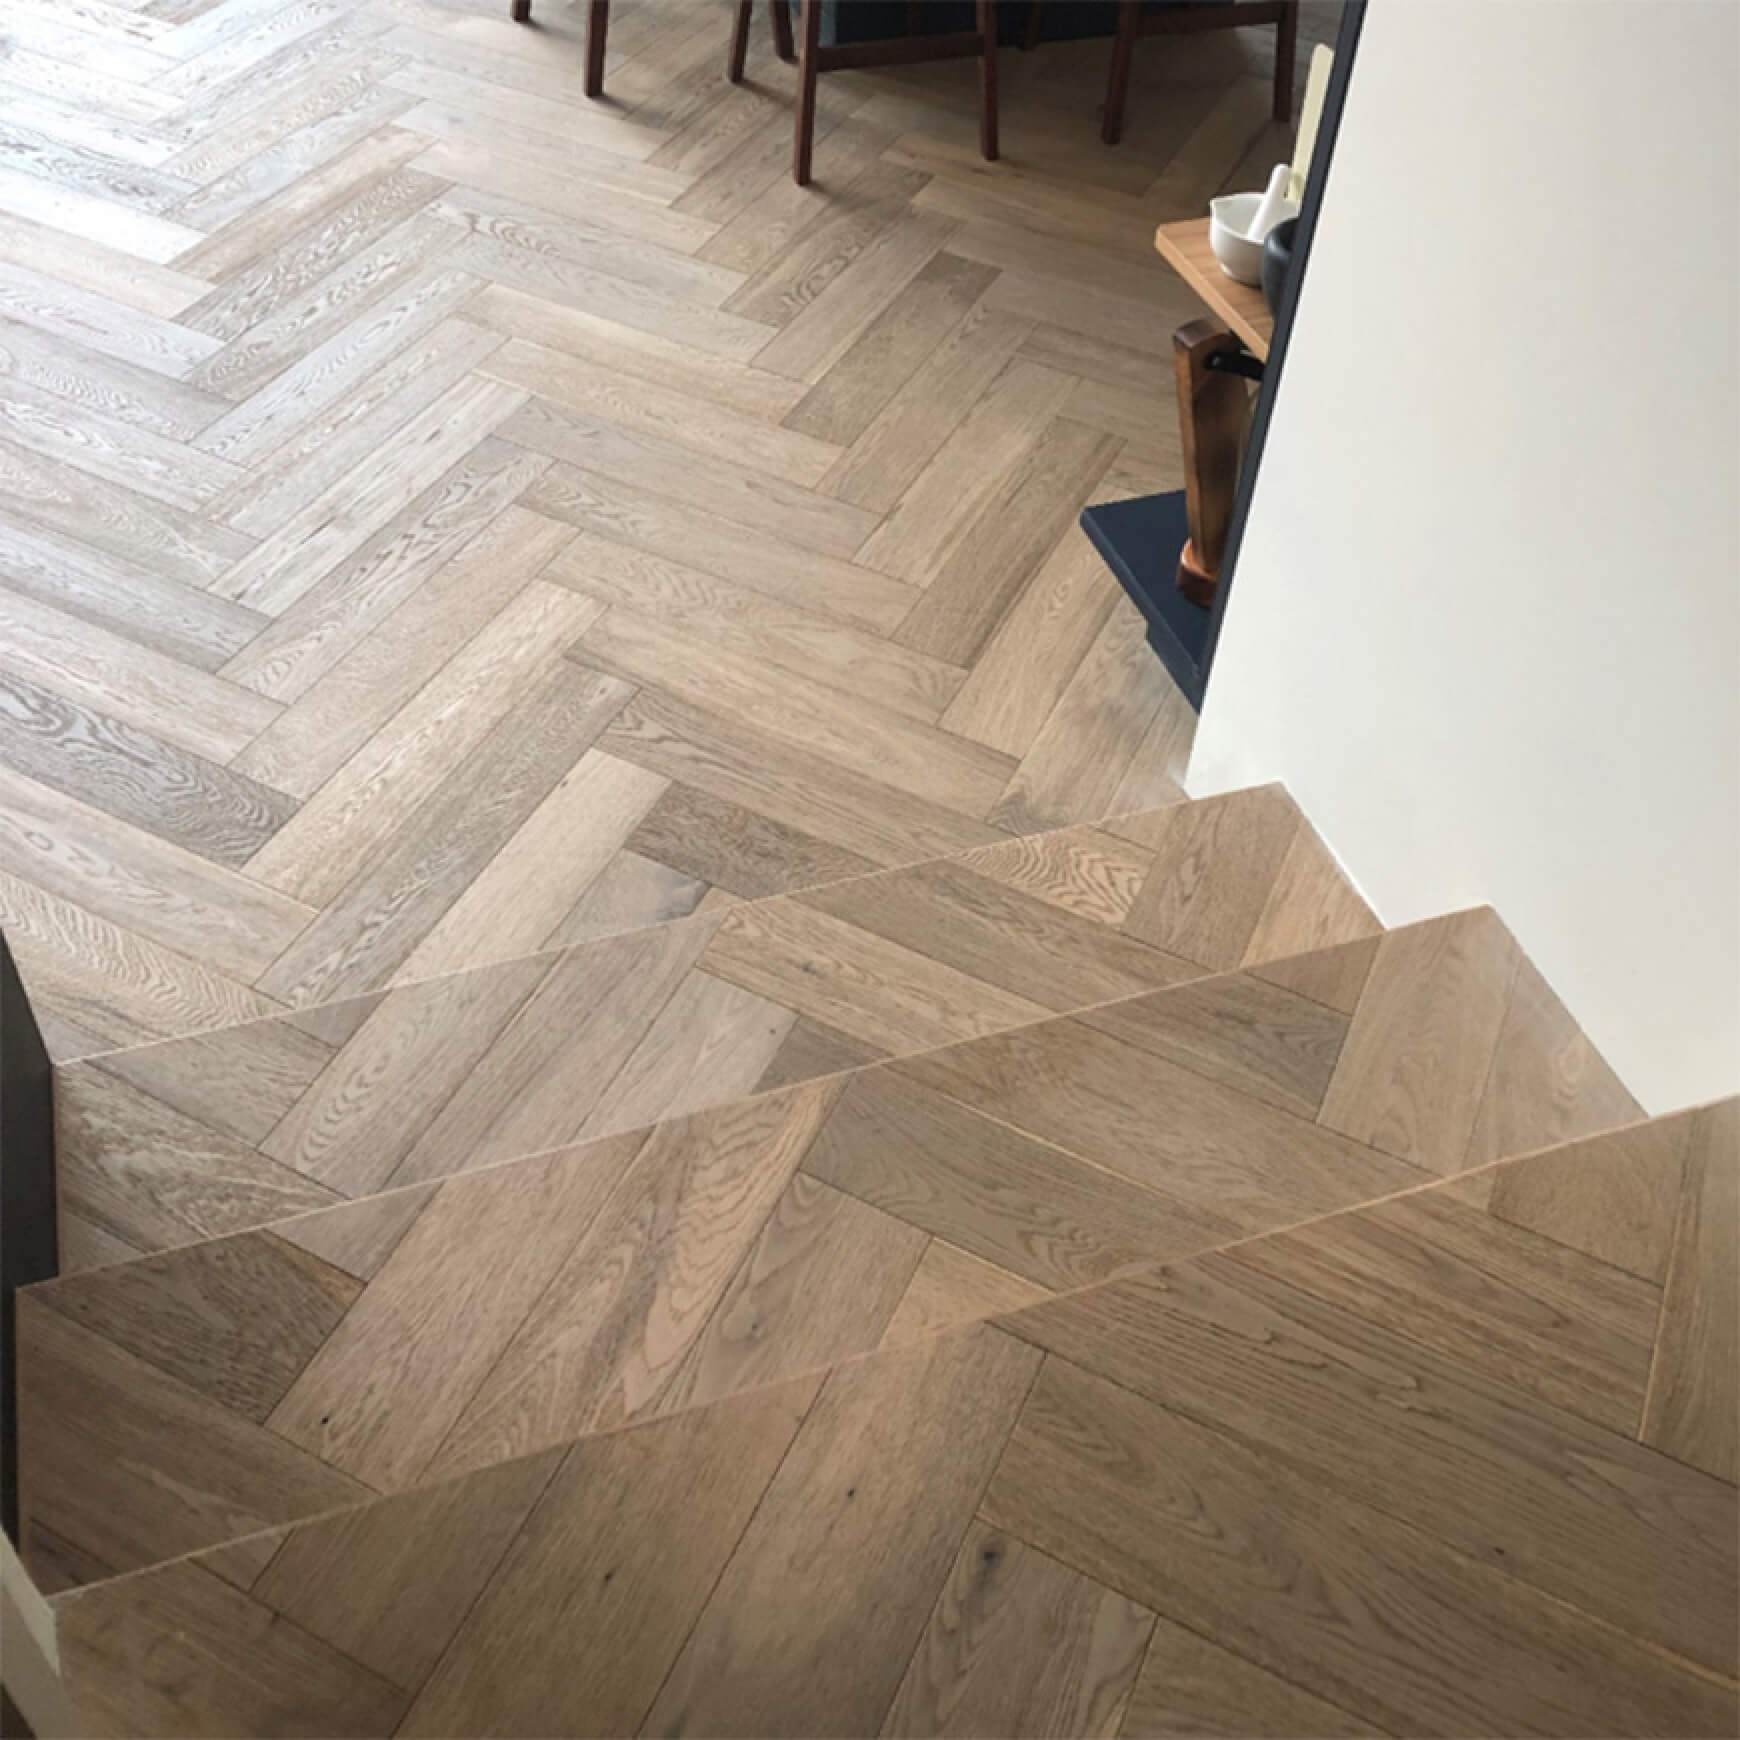 Herringbone Parquet Wood Flooring cladded onto stairs